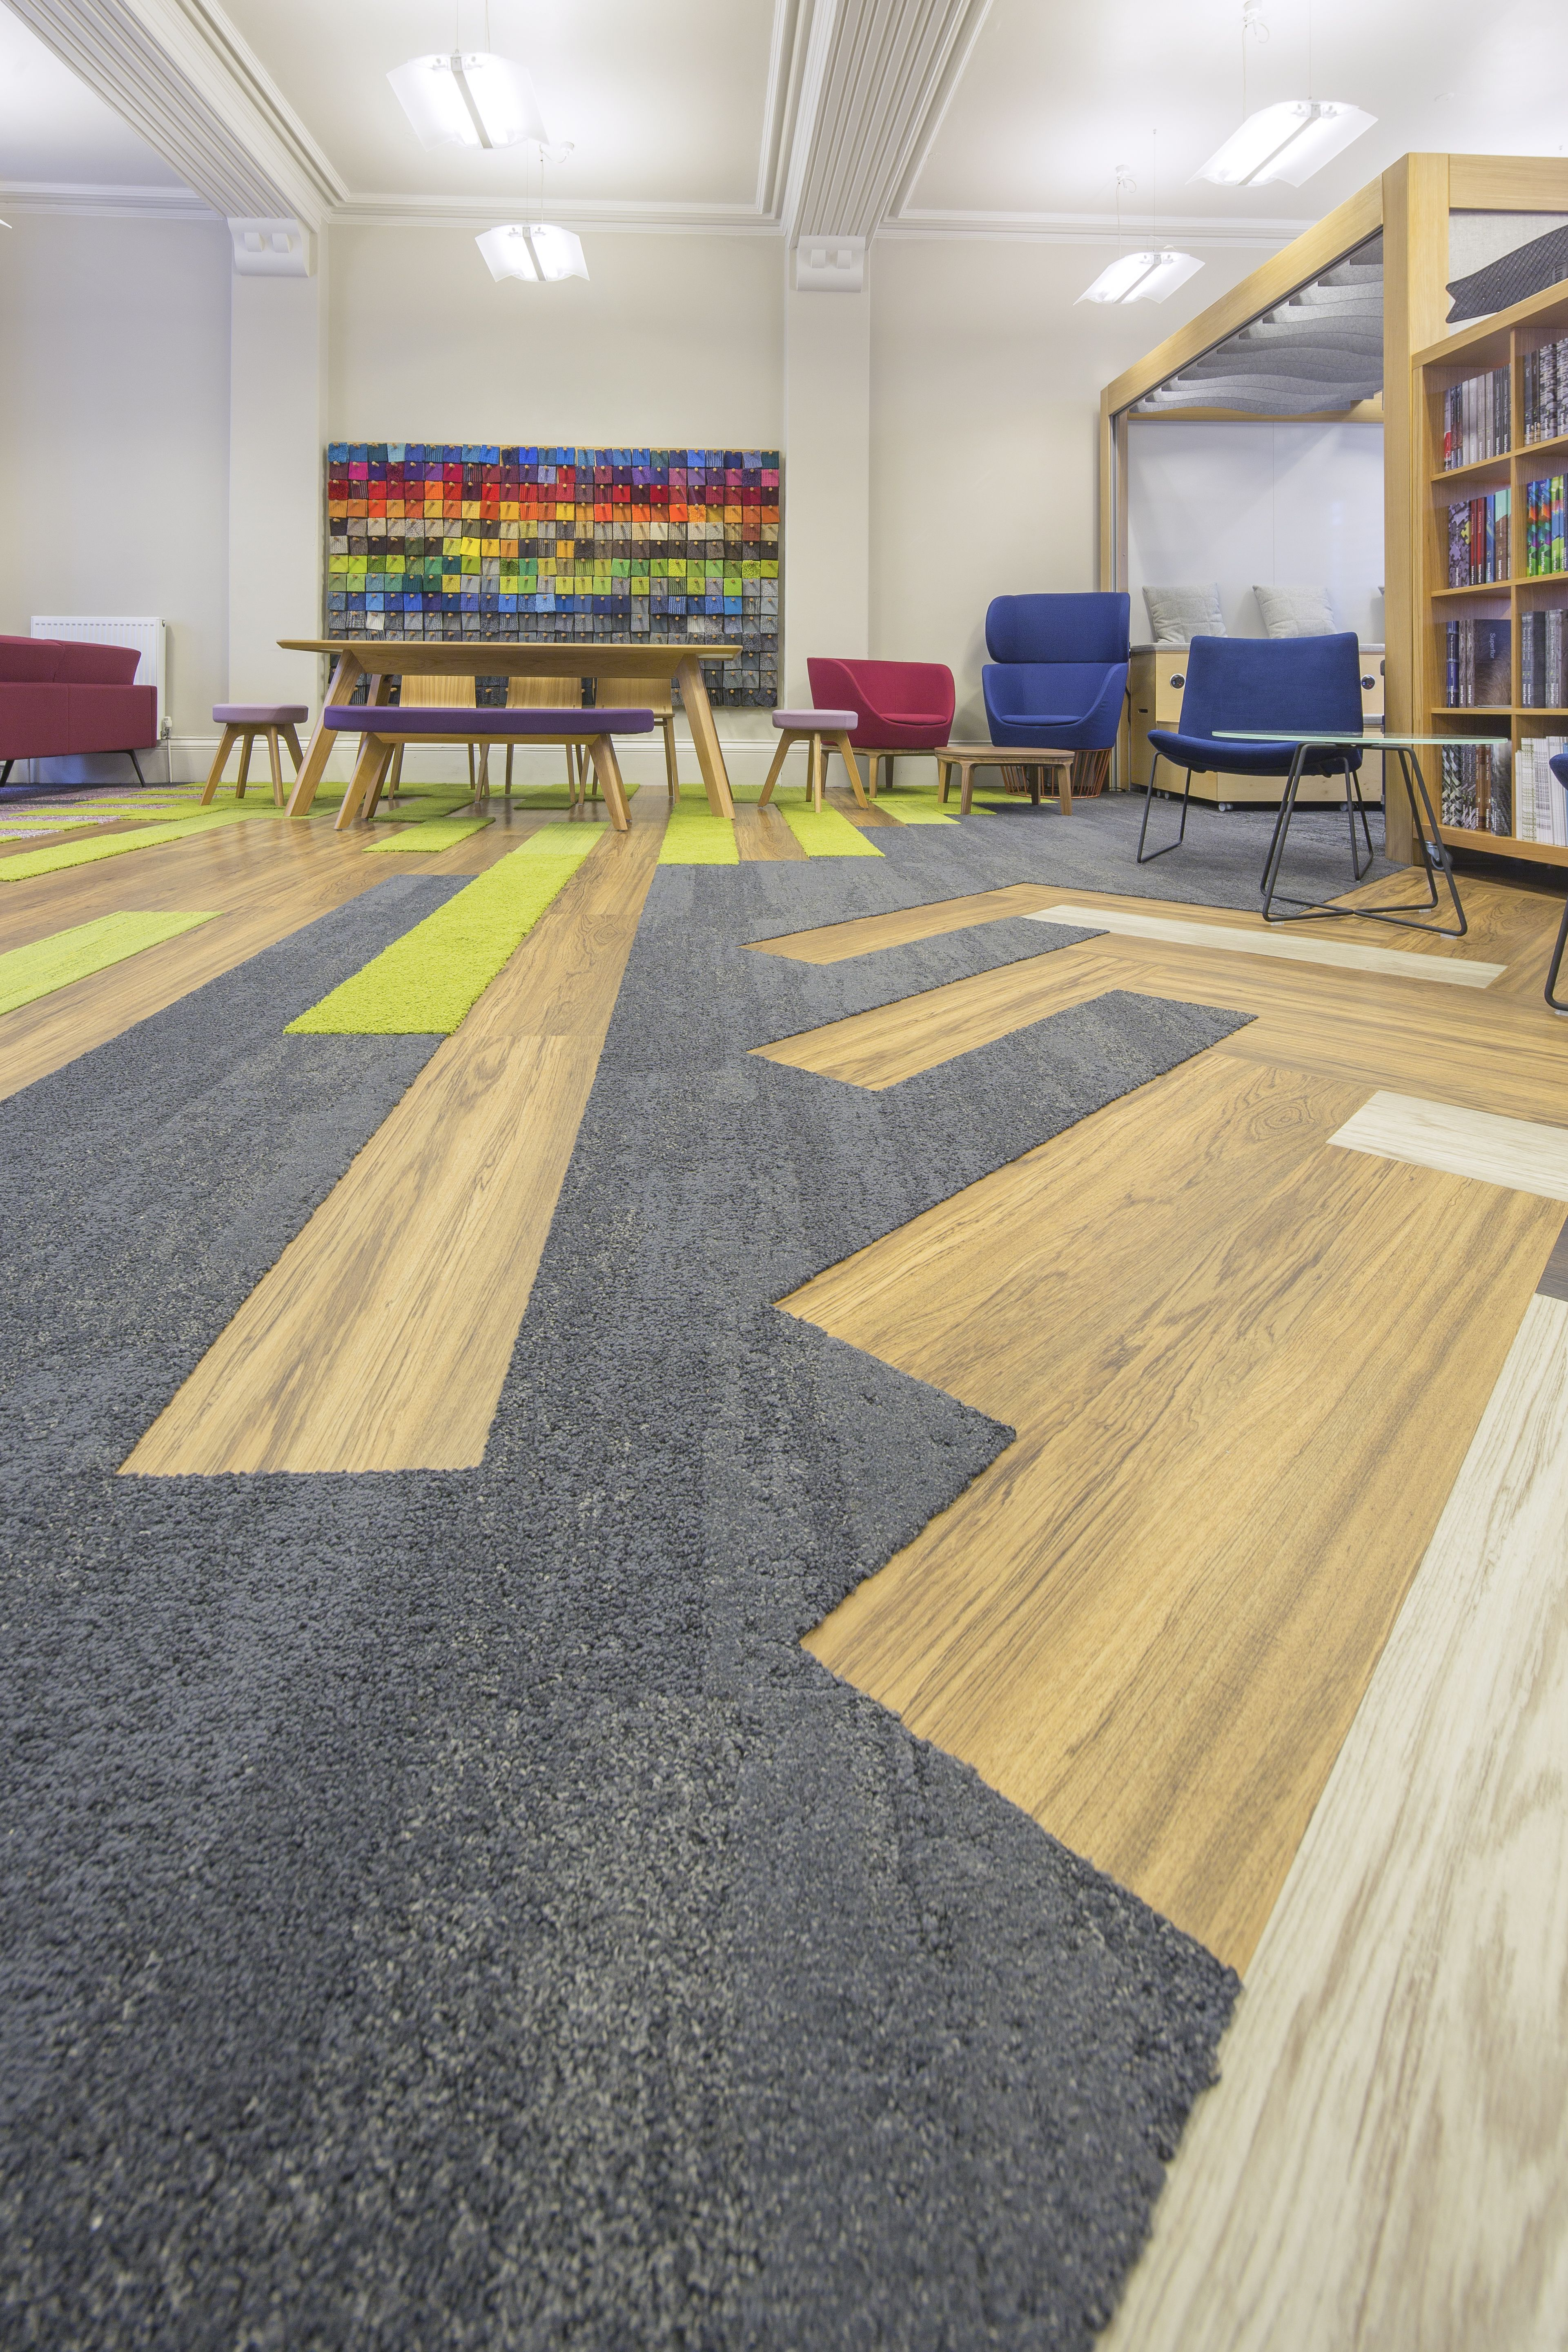 No better place to show different flooring solutions and